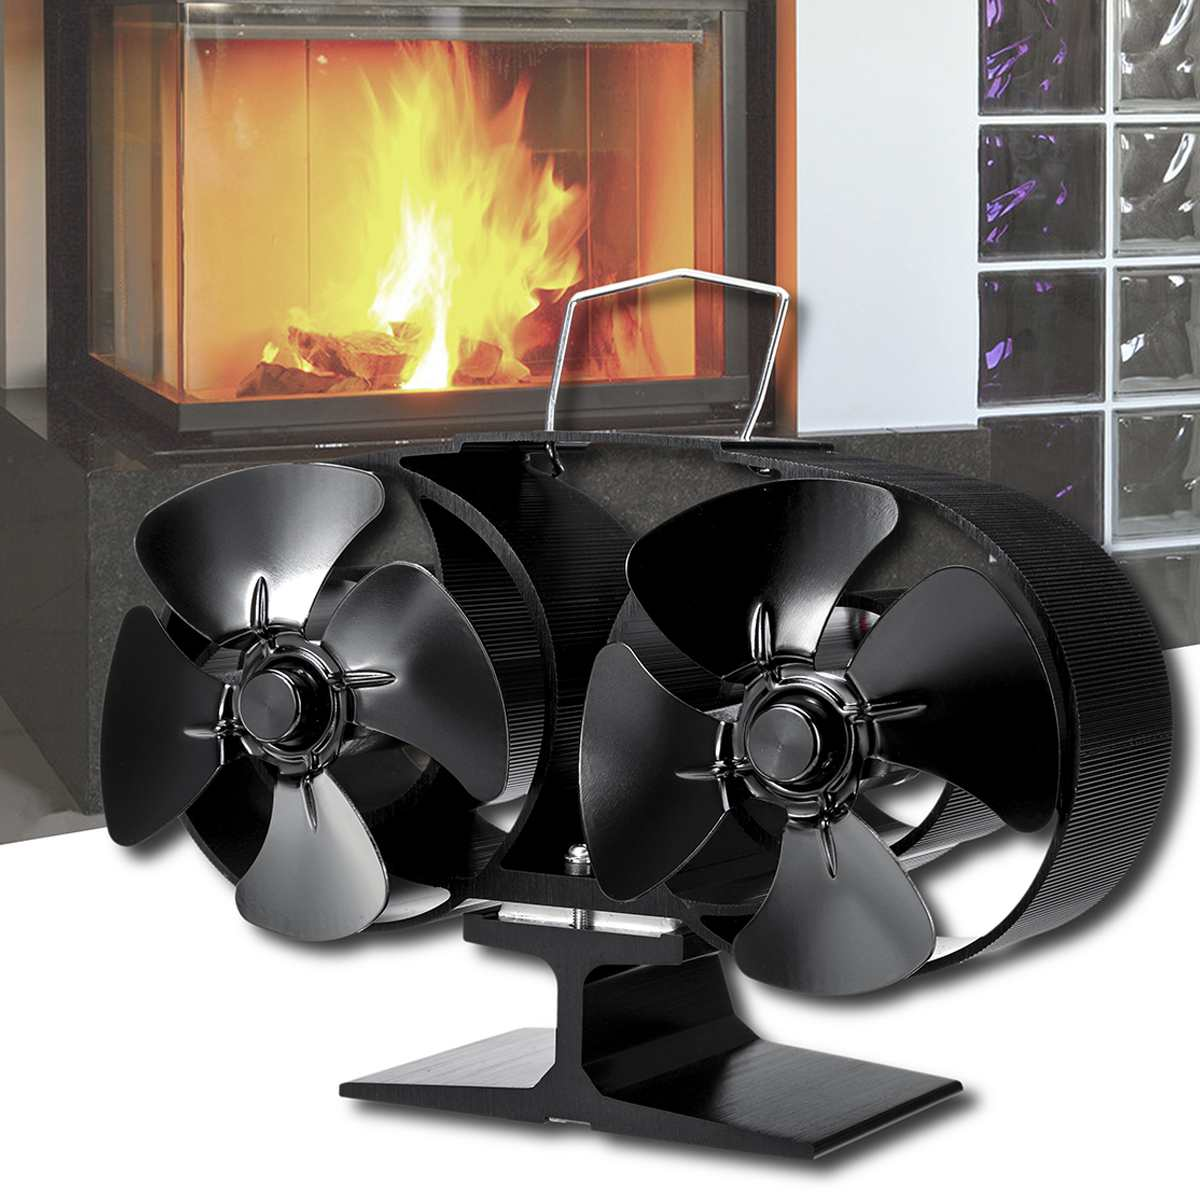 8 Blade Stove Fan Hot Power Heat Furnace Fireplace Fan Heat Powered Household Efficient Heat Distribution Wood Stove Fan